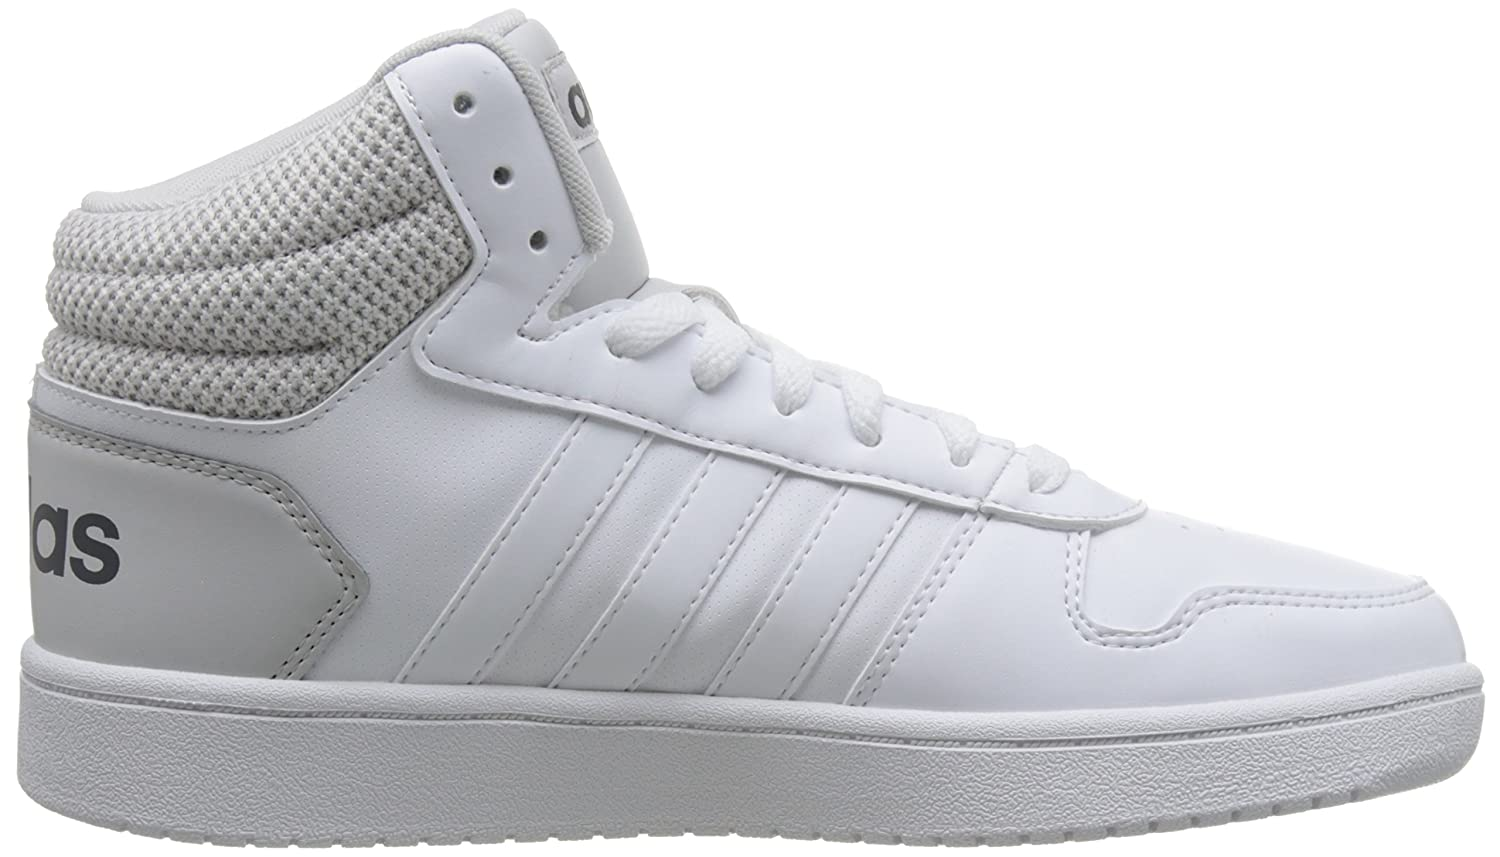 8ec5d06ec274 Adidas Men s Hoops 2.0 Mid Ftwwht Ftwwht Greone Basketball Shoes - 11  UK India (46 1 9 EU)(DB0106)  Buy Online at Low Prices in India - Amazon.in